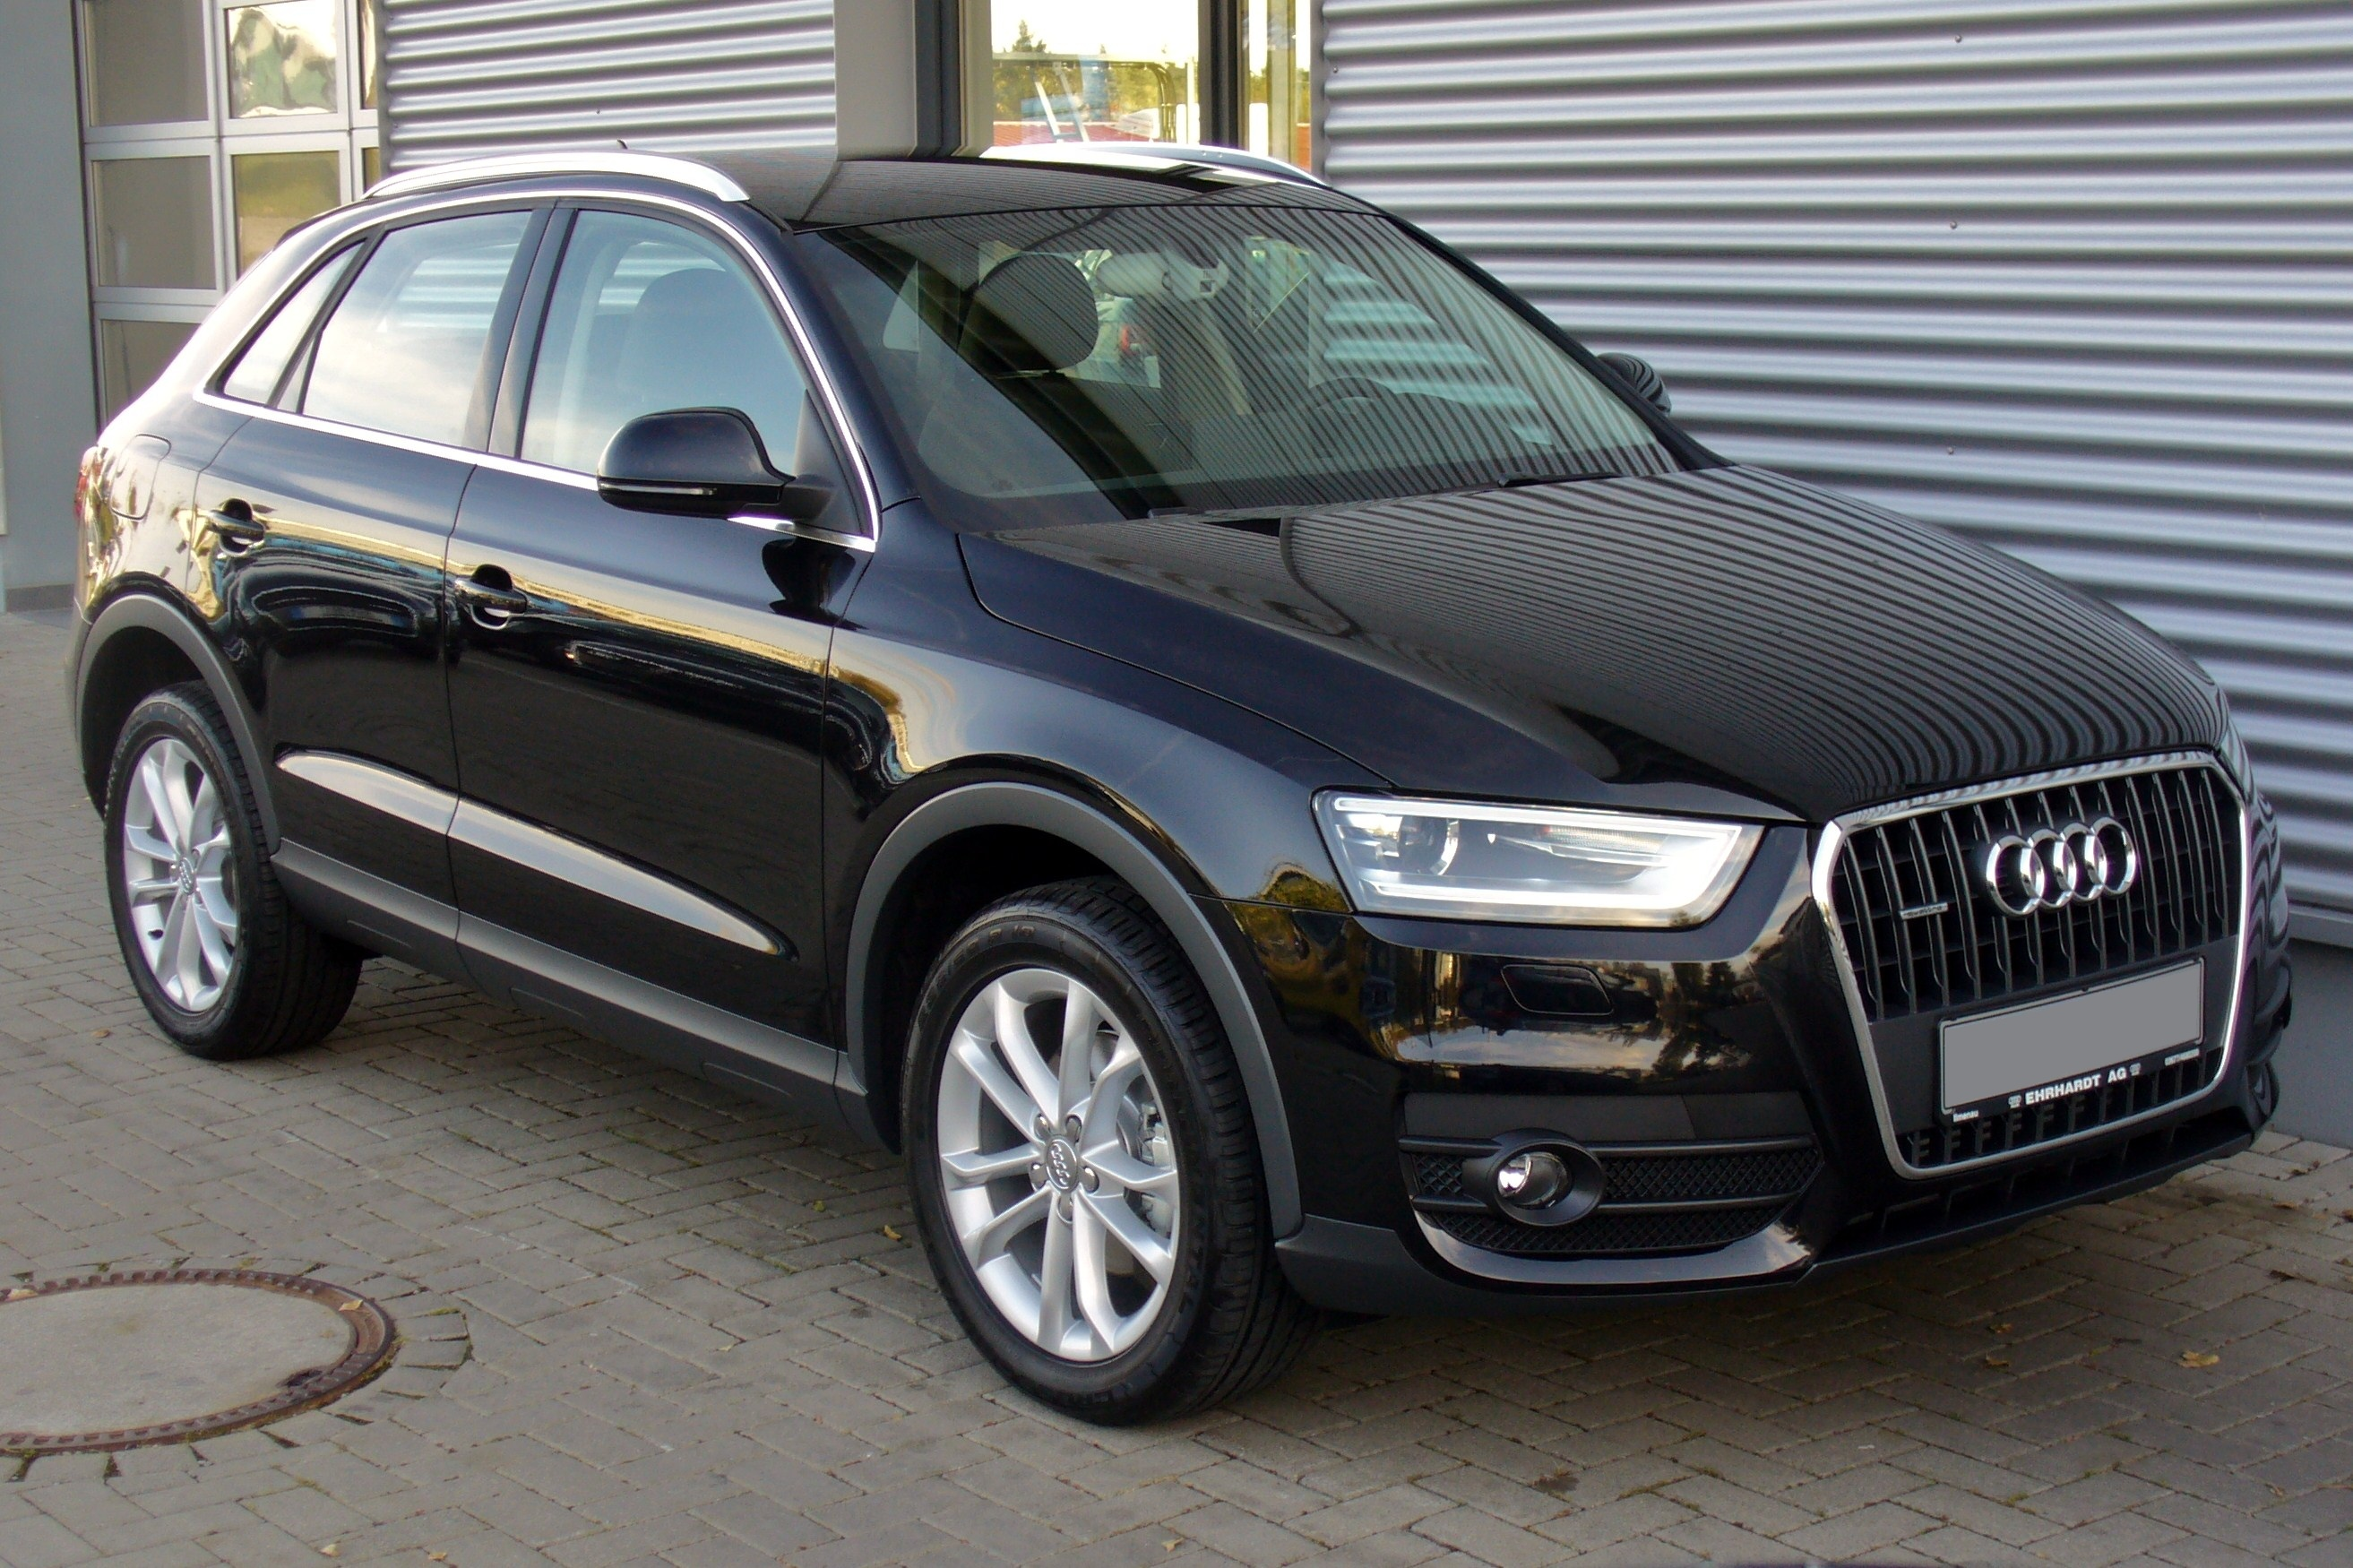 file audi q3 2 0 tdi quattro s tronic phantomschwarz jpg wikimedia commons. Black Bedroom Furniture Sets. Home Design Ideas